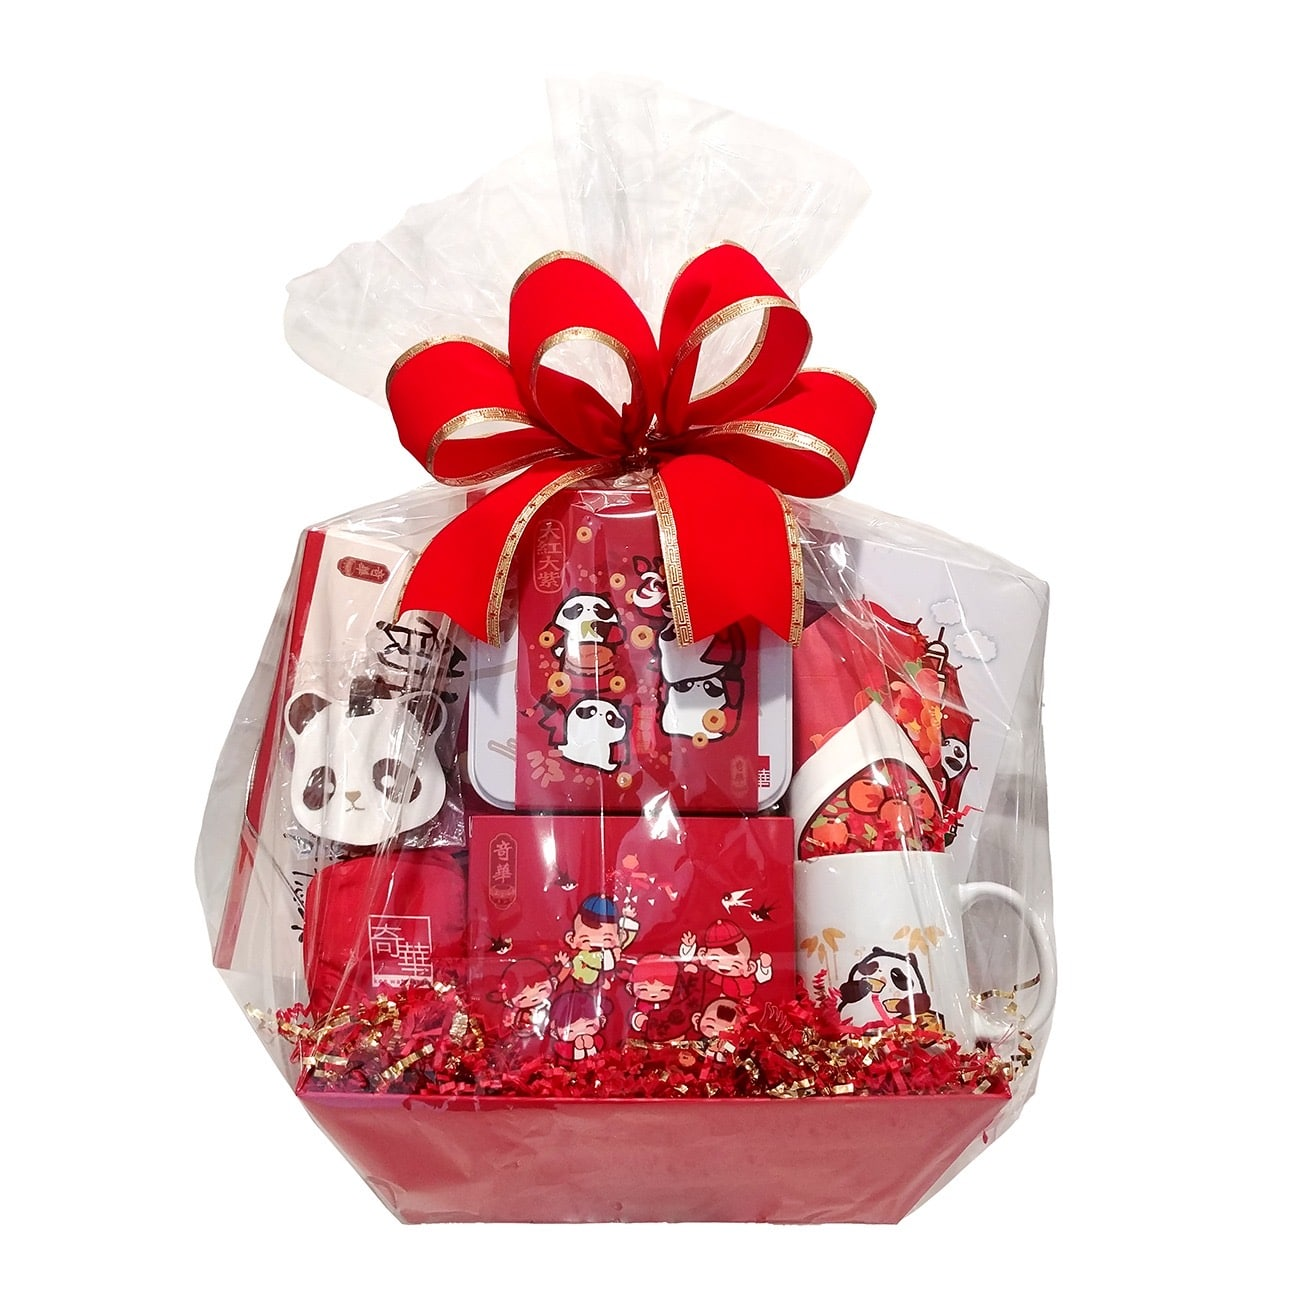 CNY BASKET LARGE